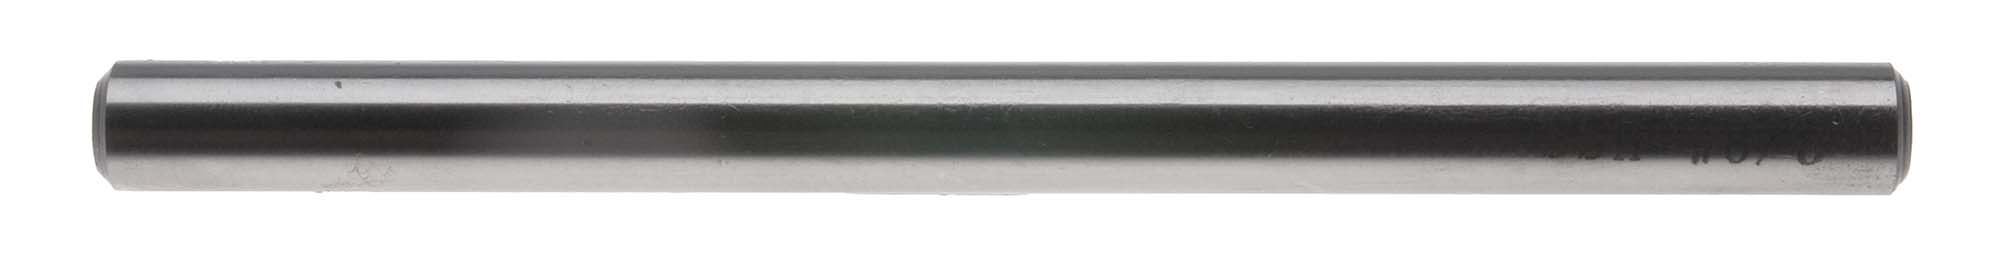 "#4 (.2090"") Jobber Length Drill Blank, High Speed Steel"